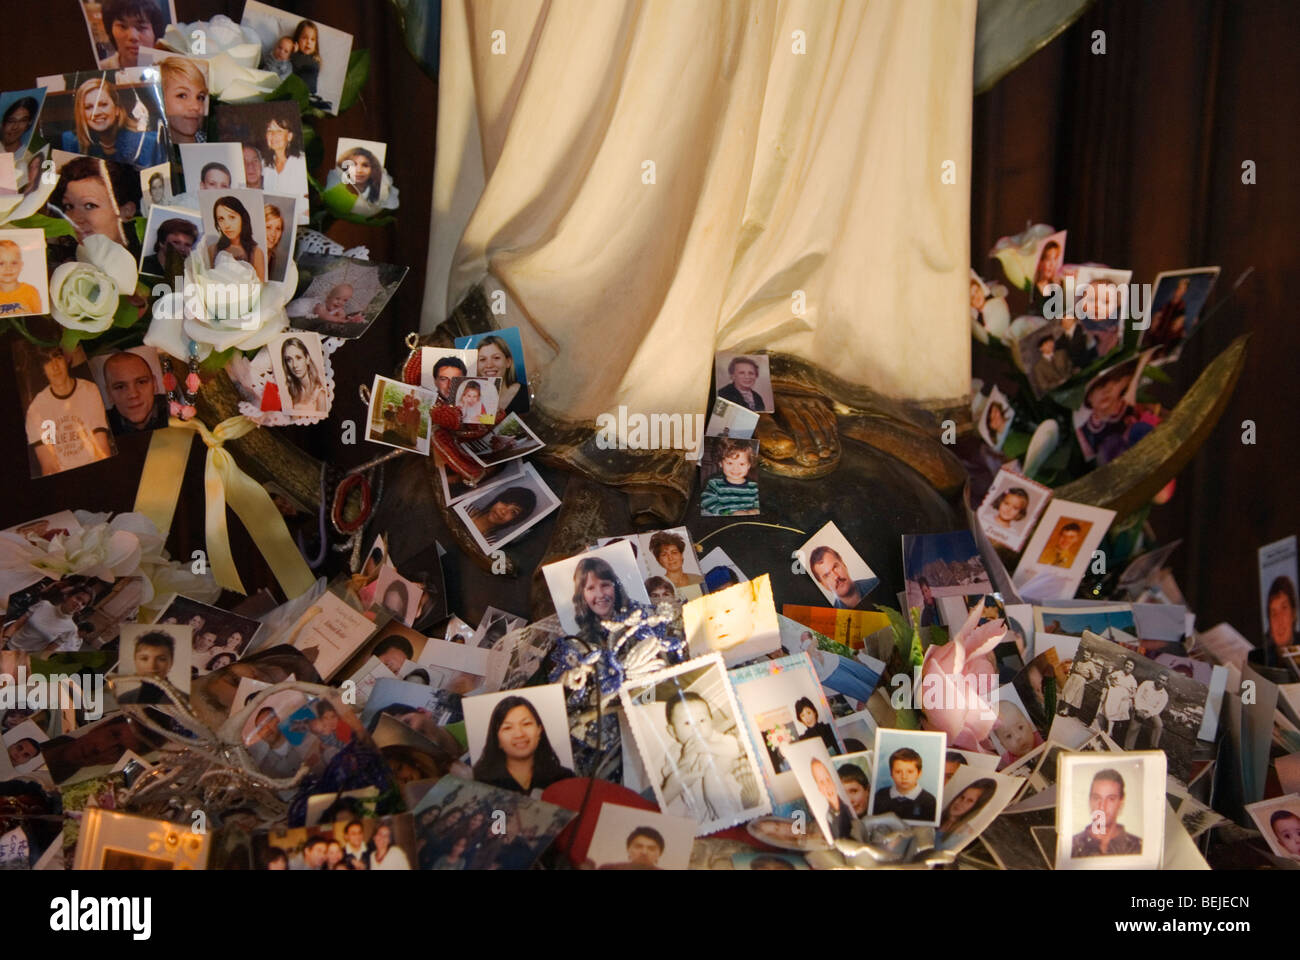 Santa Maria Gloriosa dei Frari Venice Italy. Photographs of ill and unwell people left at the base of a statue of - Stock Image